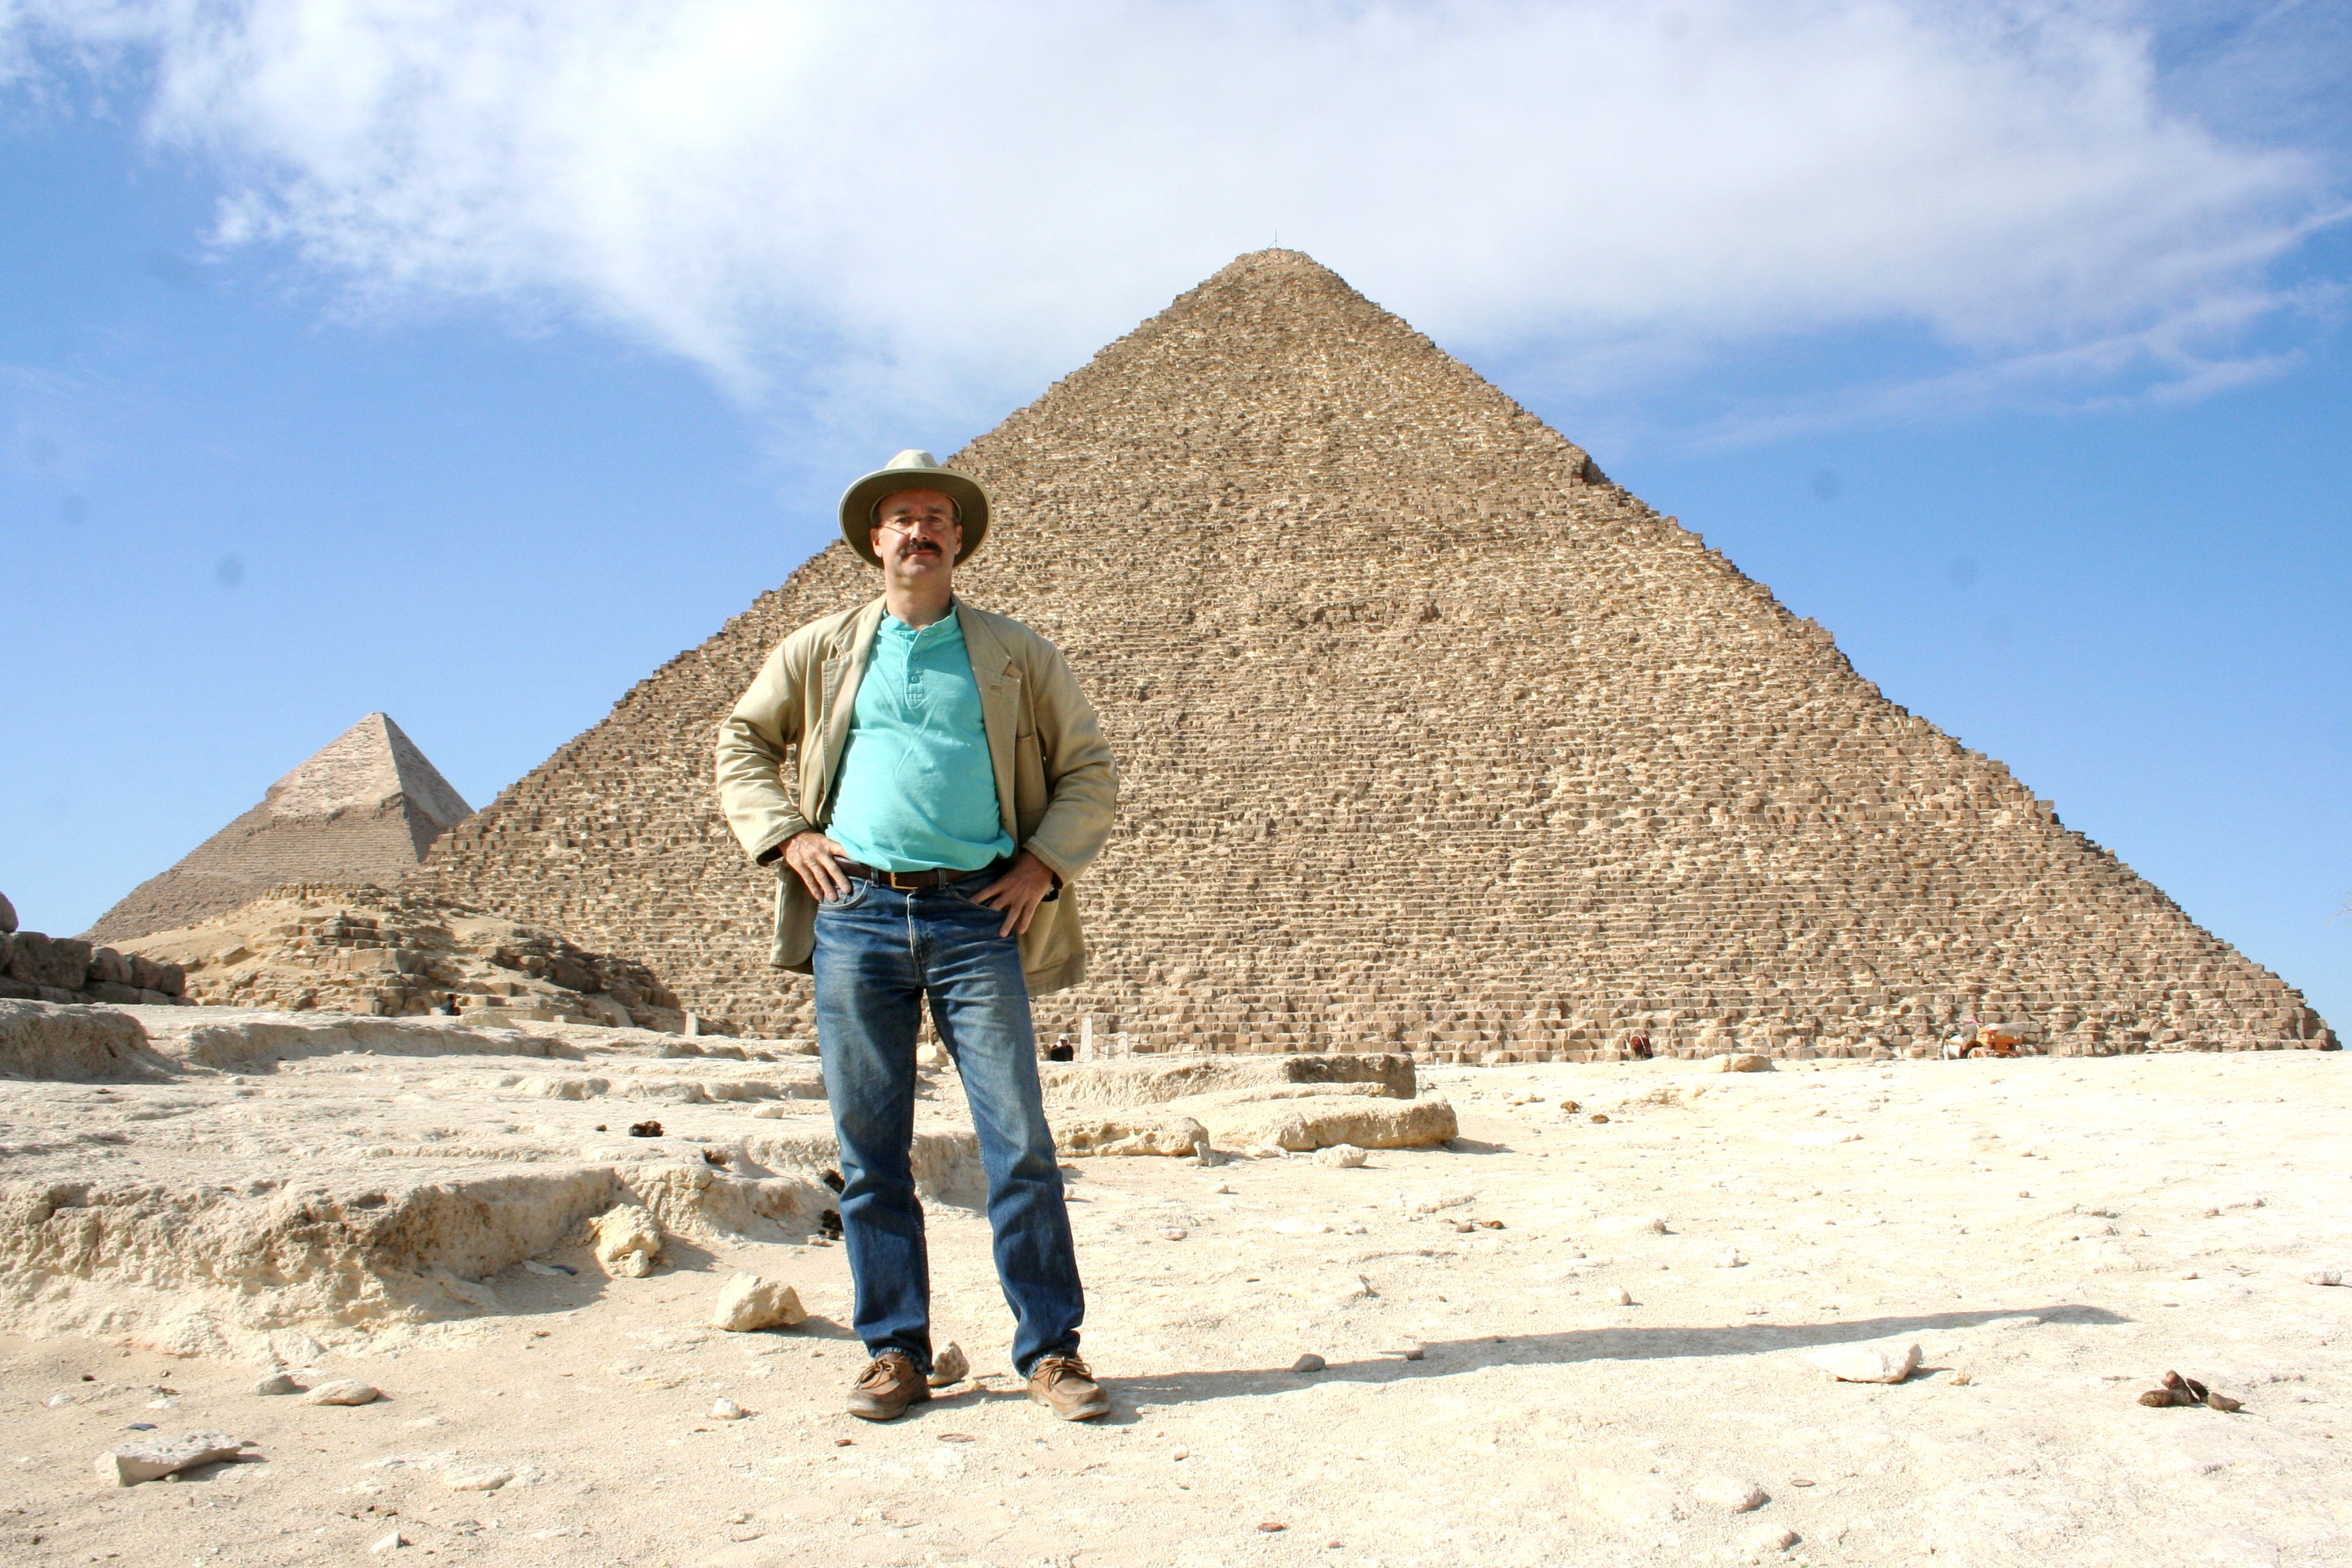 The Great Pyramid on 12/21/12